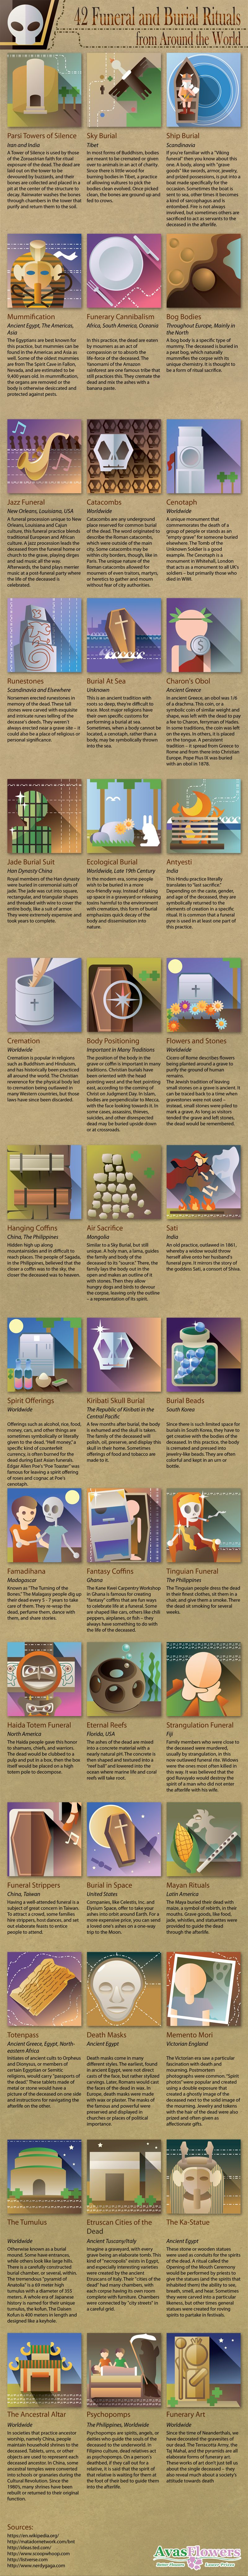 """Infographic: """"42 Funeral and Burial Rituals from Around the World"""""""